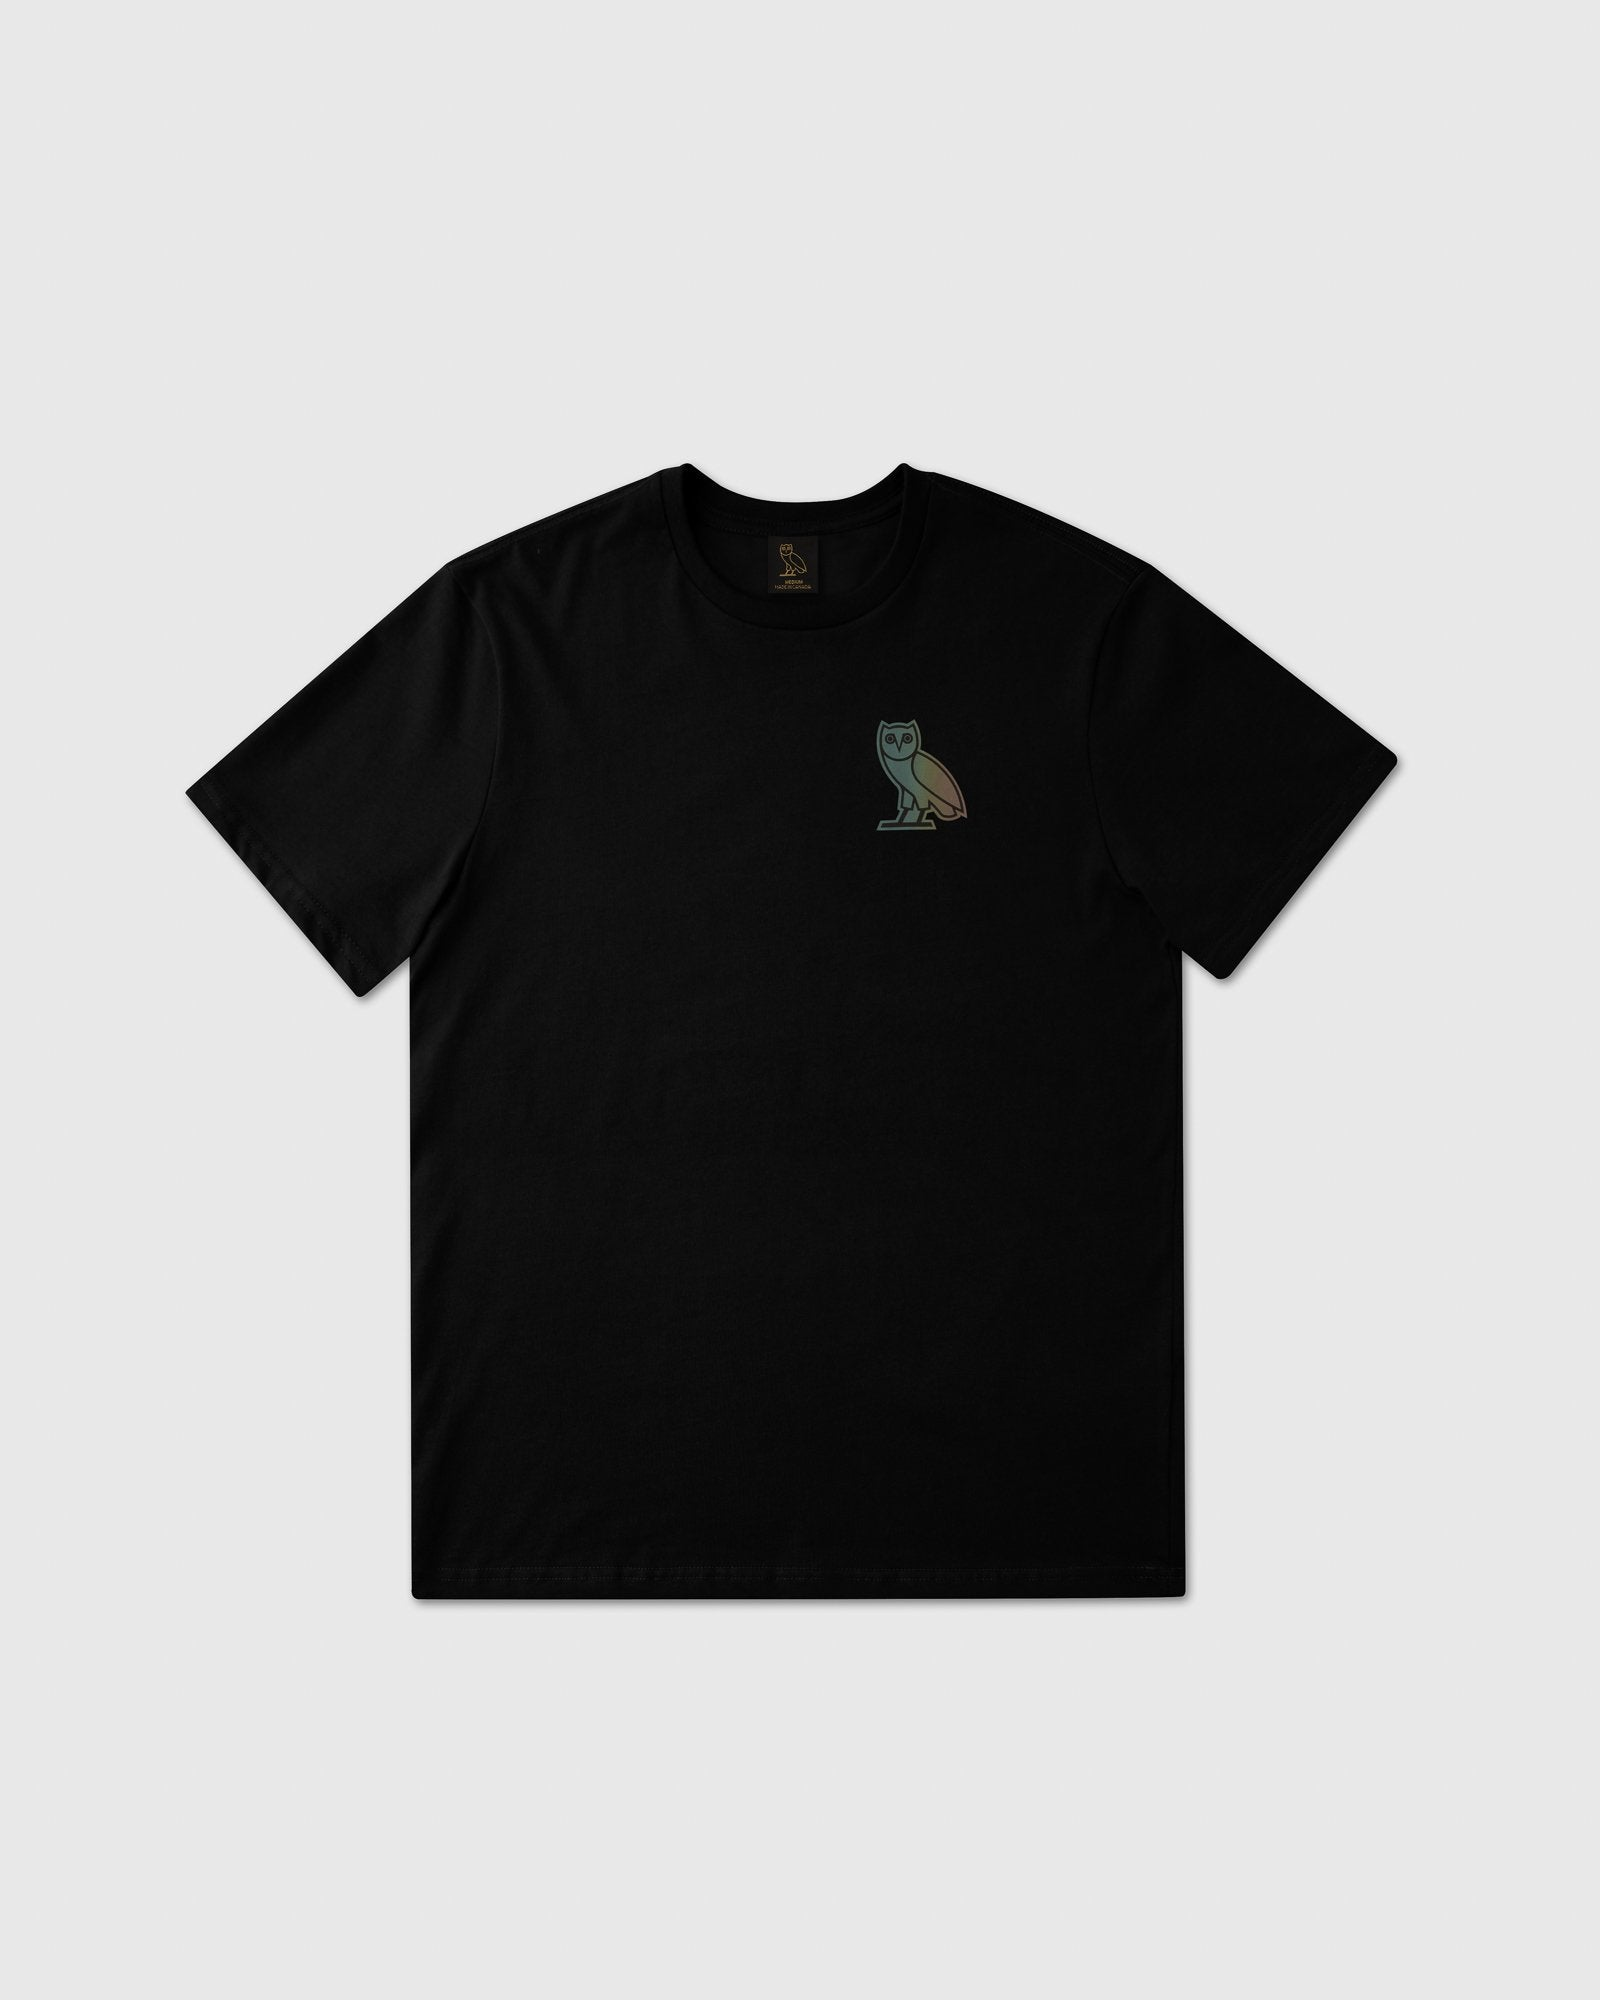 HOLOGRAM OWL T-SHIRT - BLACK IMAGE #1